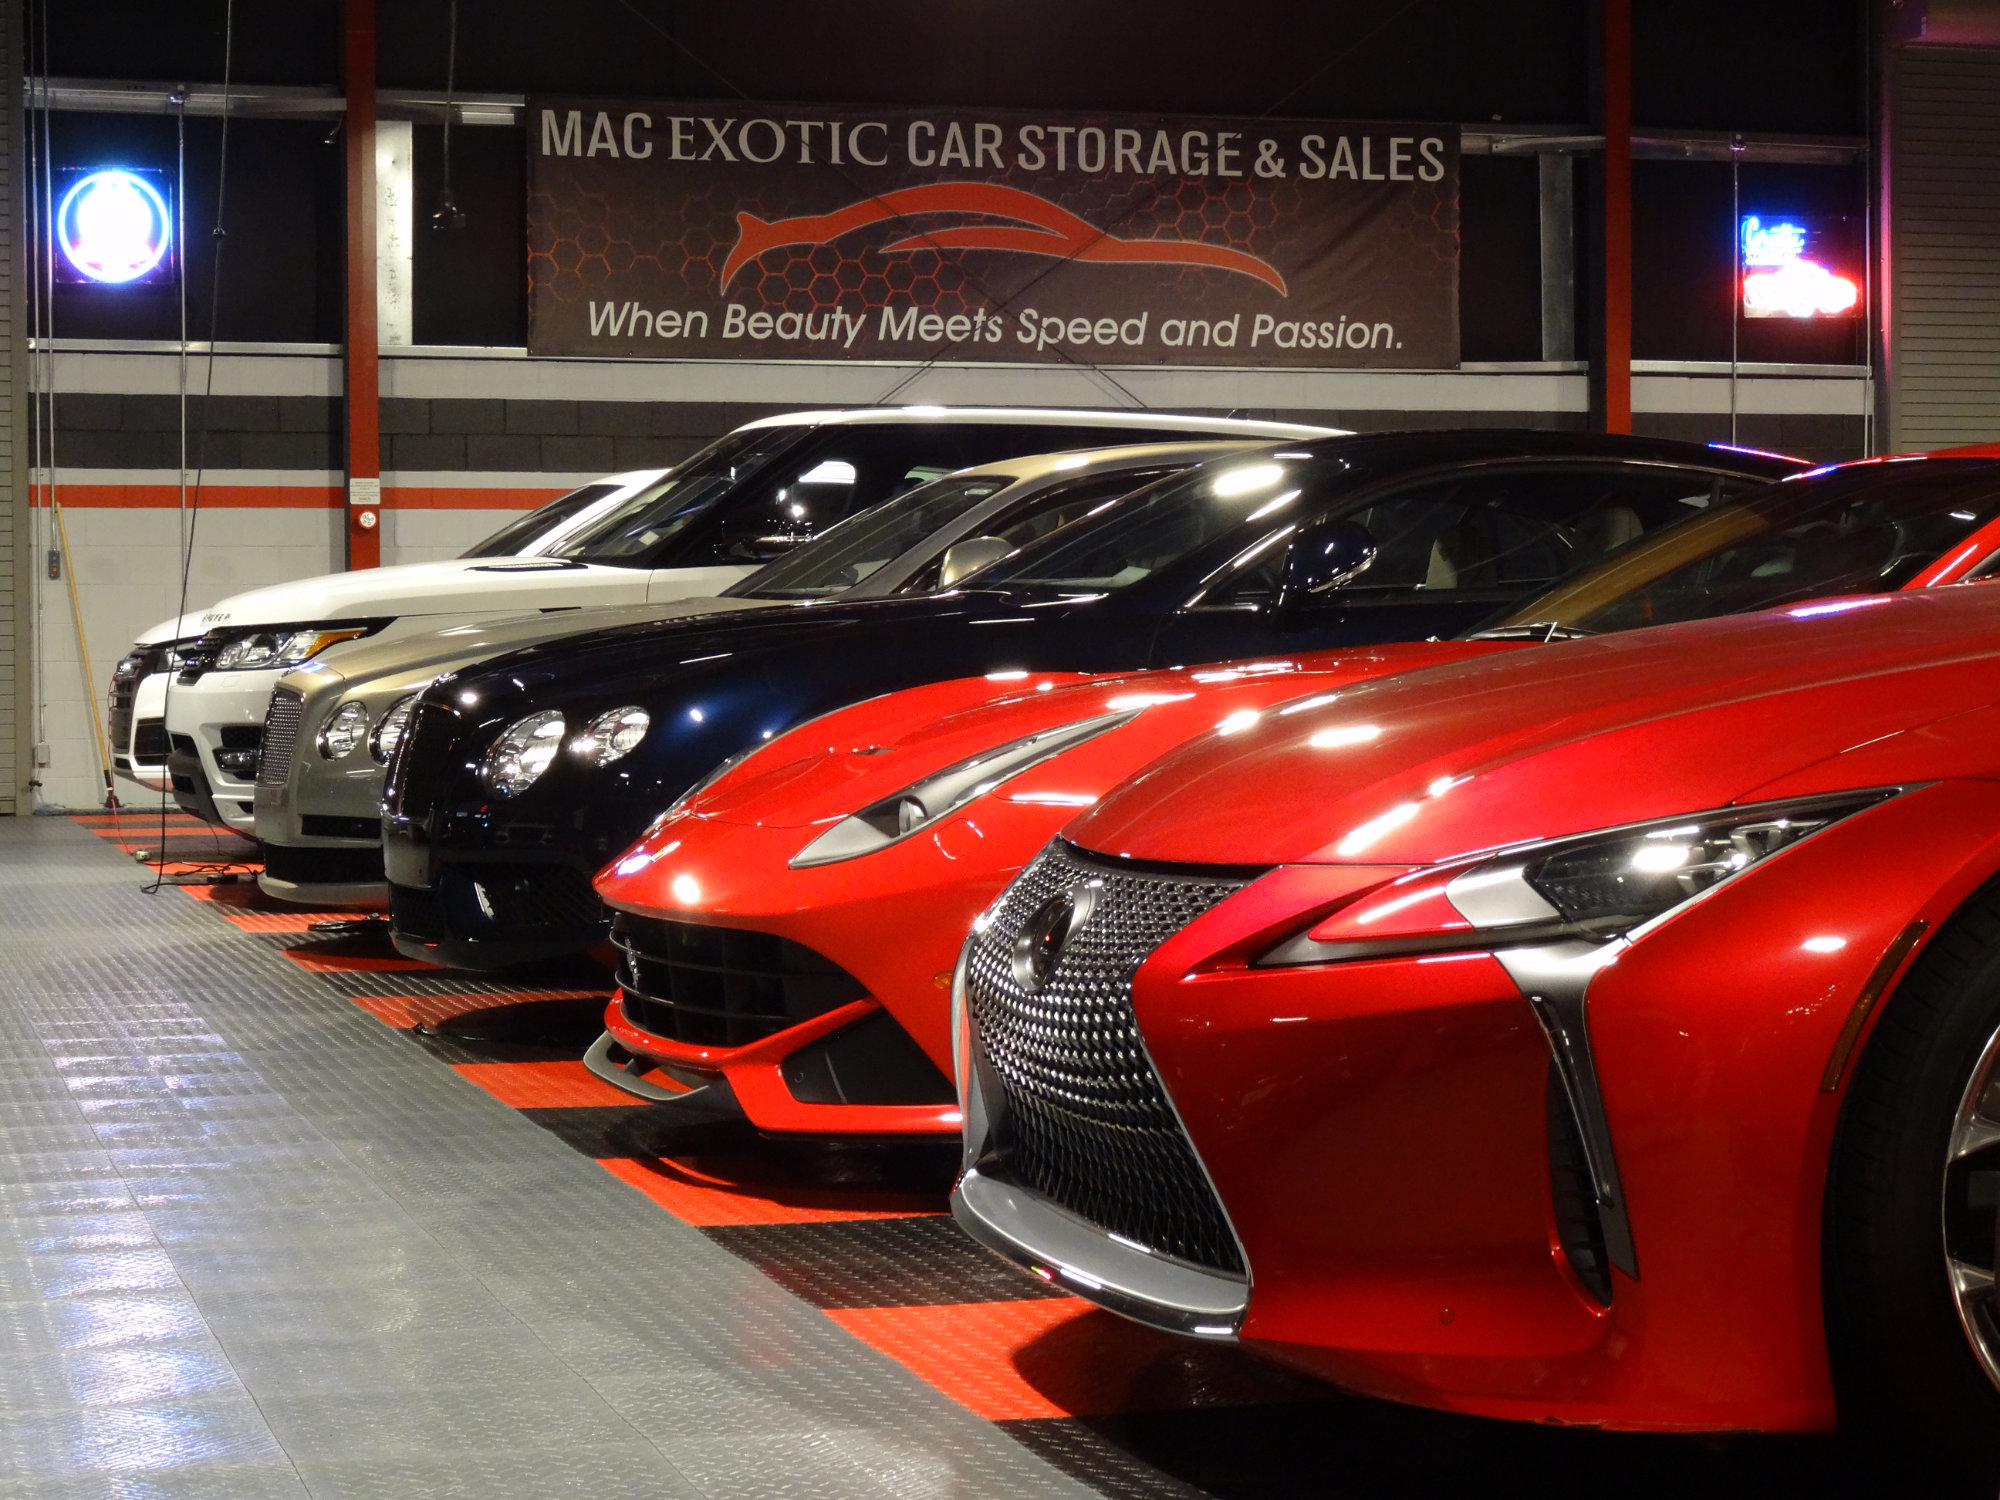 Safe Auto Customer Service >> Mac Exotic Car Storage - Sarasota, Bradenton, Lakewood Ranch Secured Climate Controlled Car ...